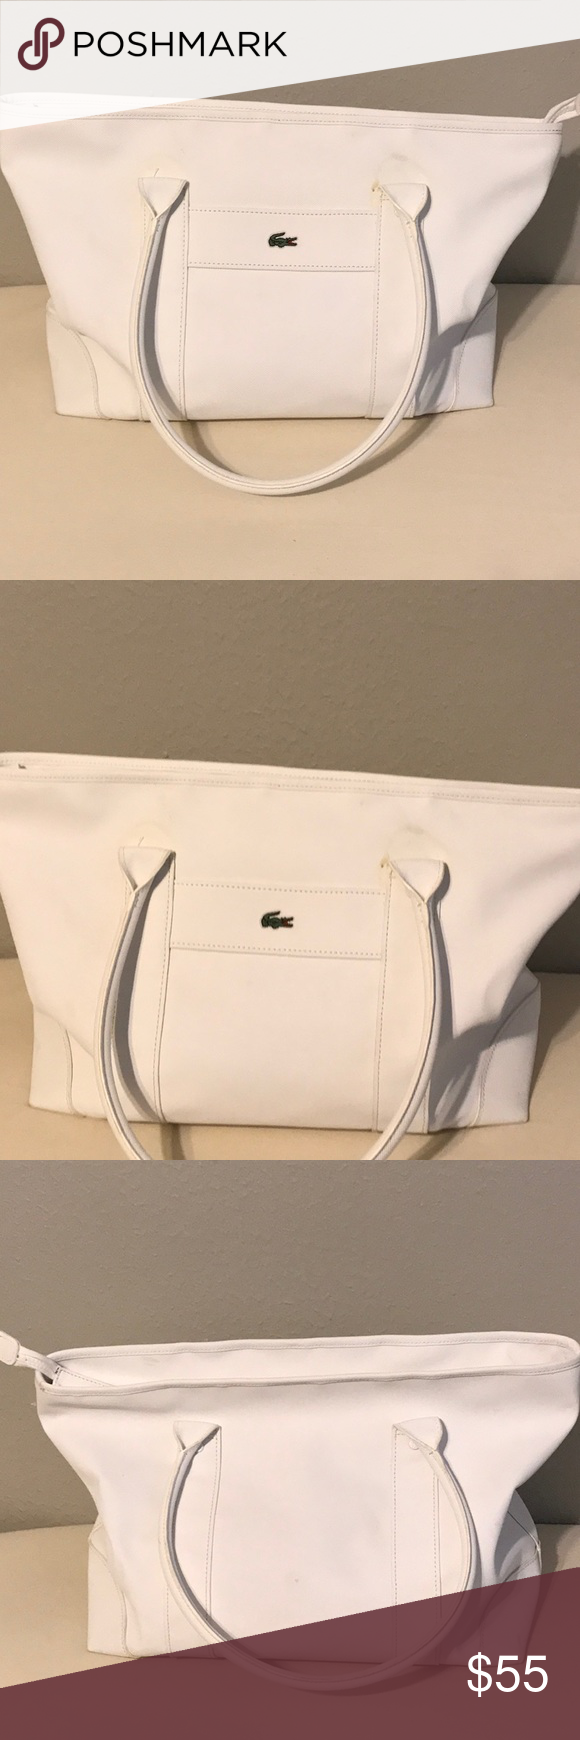 Lacoste large zip tote  412afdf275901